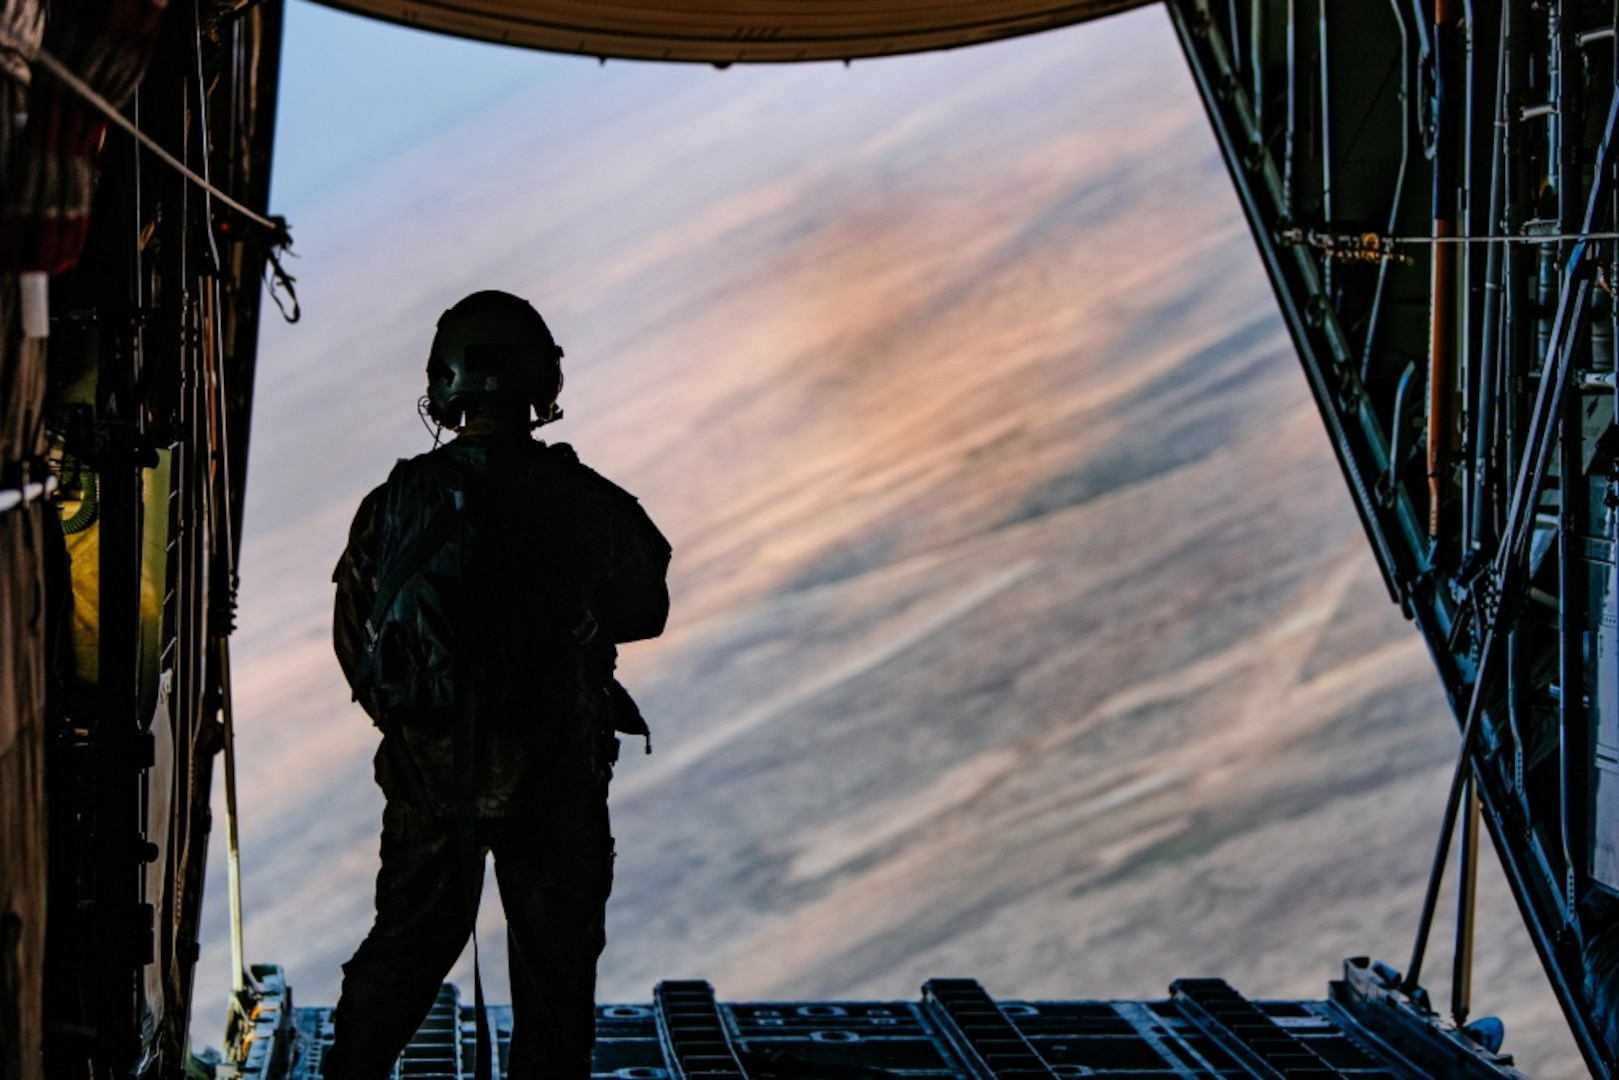 An loadmaster observes a jettisoned load of supplies from the rear of an aircraft in flight.